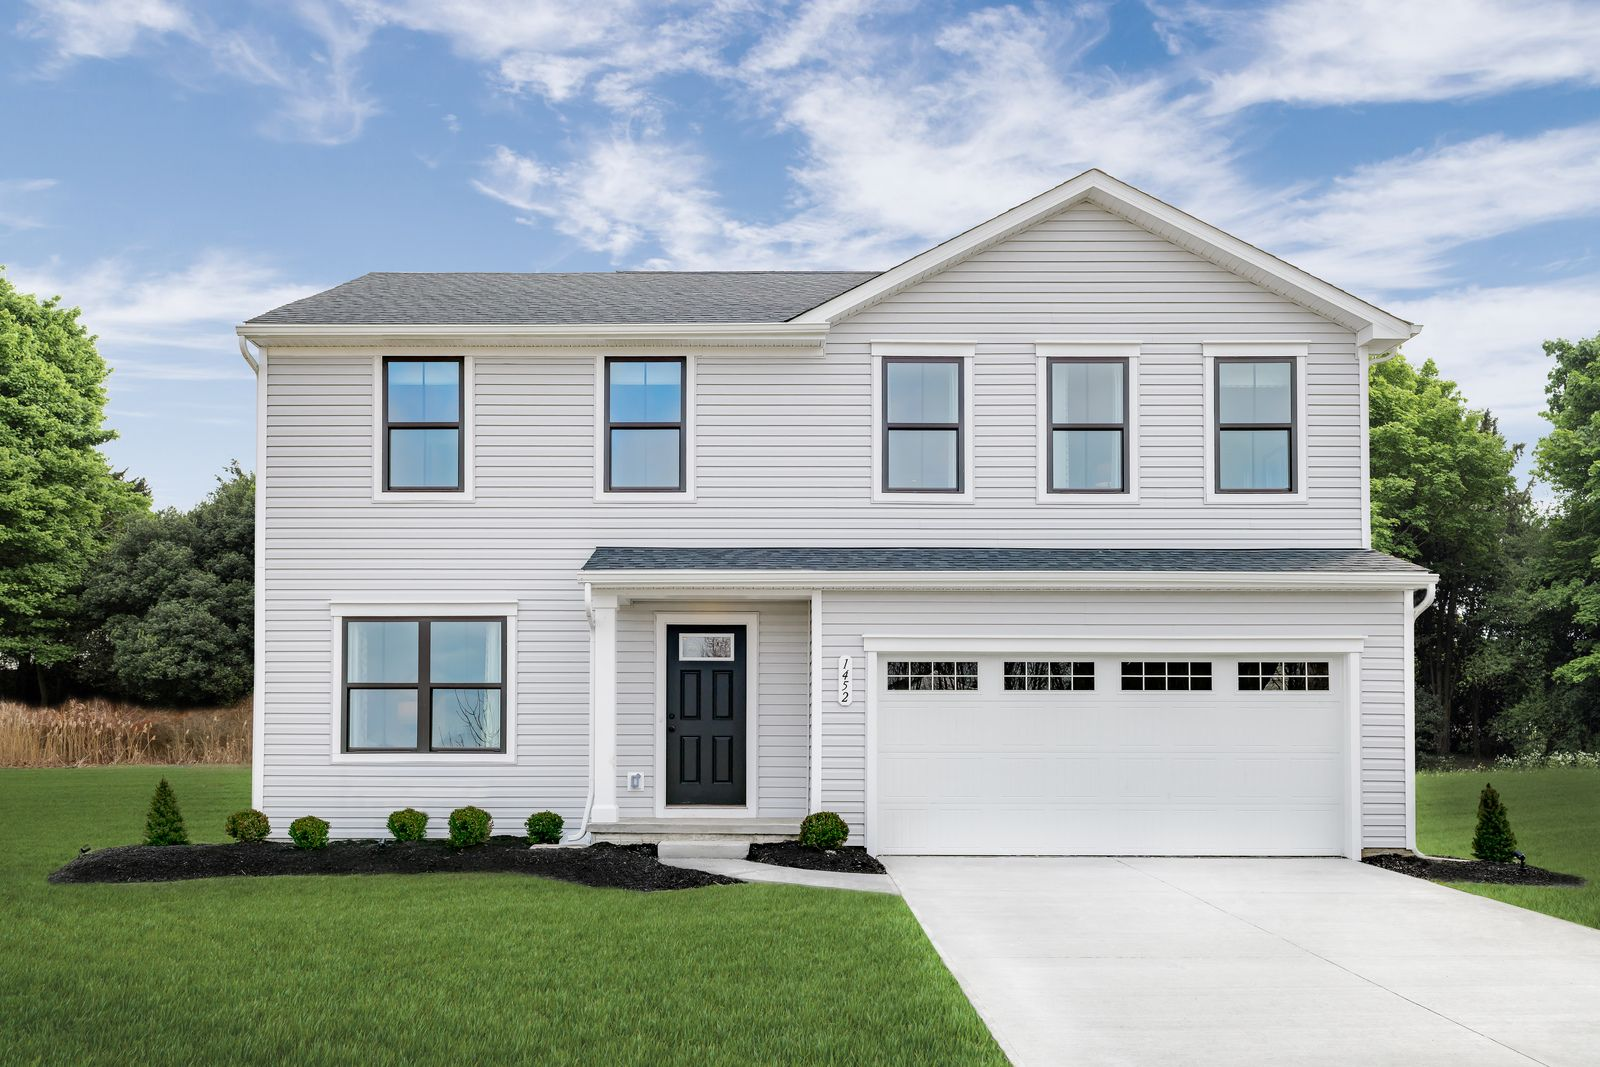 WELCOME HOME TO HIDDEN LAKES 2-STORY:Best-priced new homes in Springfield area—Lakemore. From thelower $200s! Community pavilion, playground, & dog park.Appliances included!Schedule your visit today!